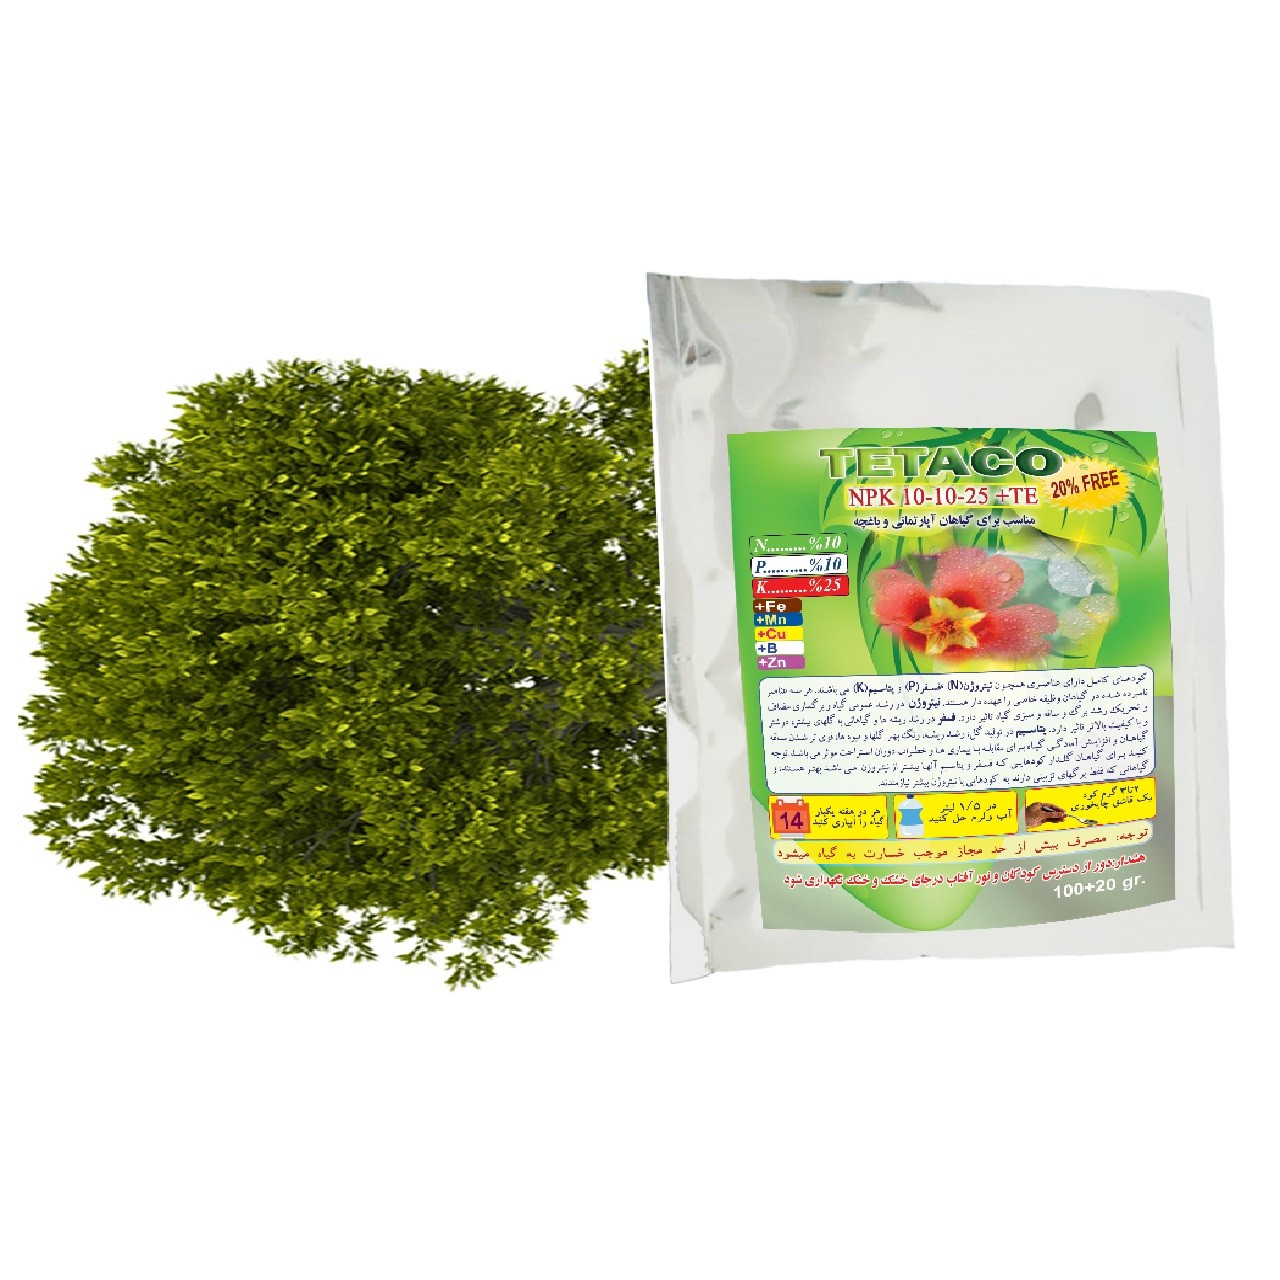 image number  4 products  NPK 10 10 25 fertilizer for houseplants weighs 120 grams